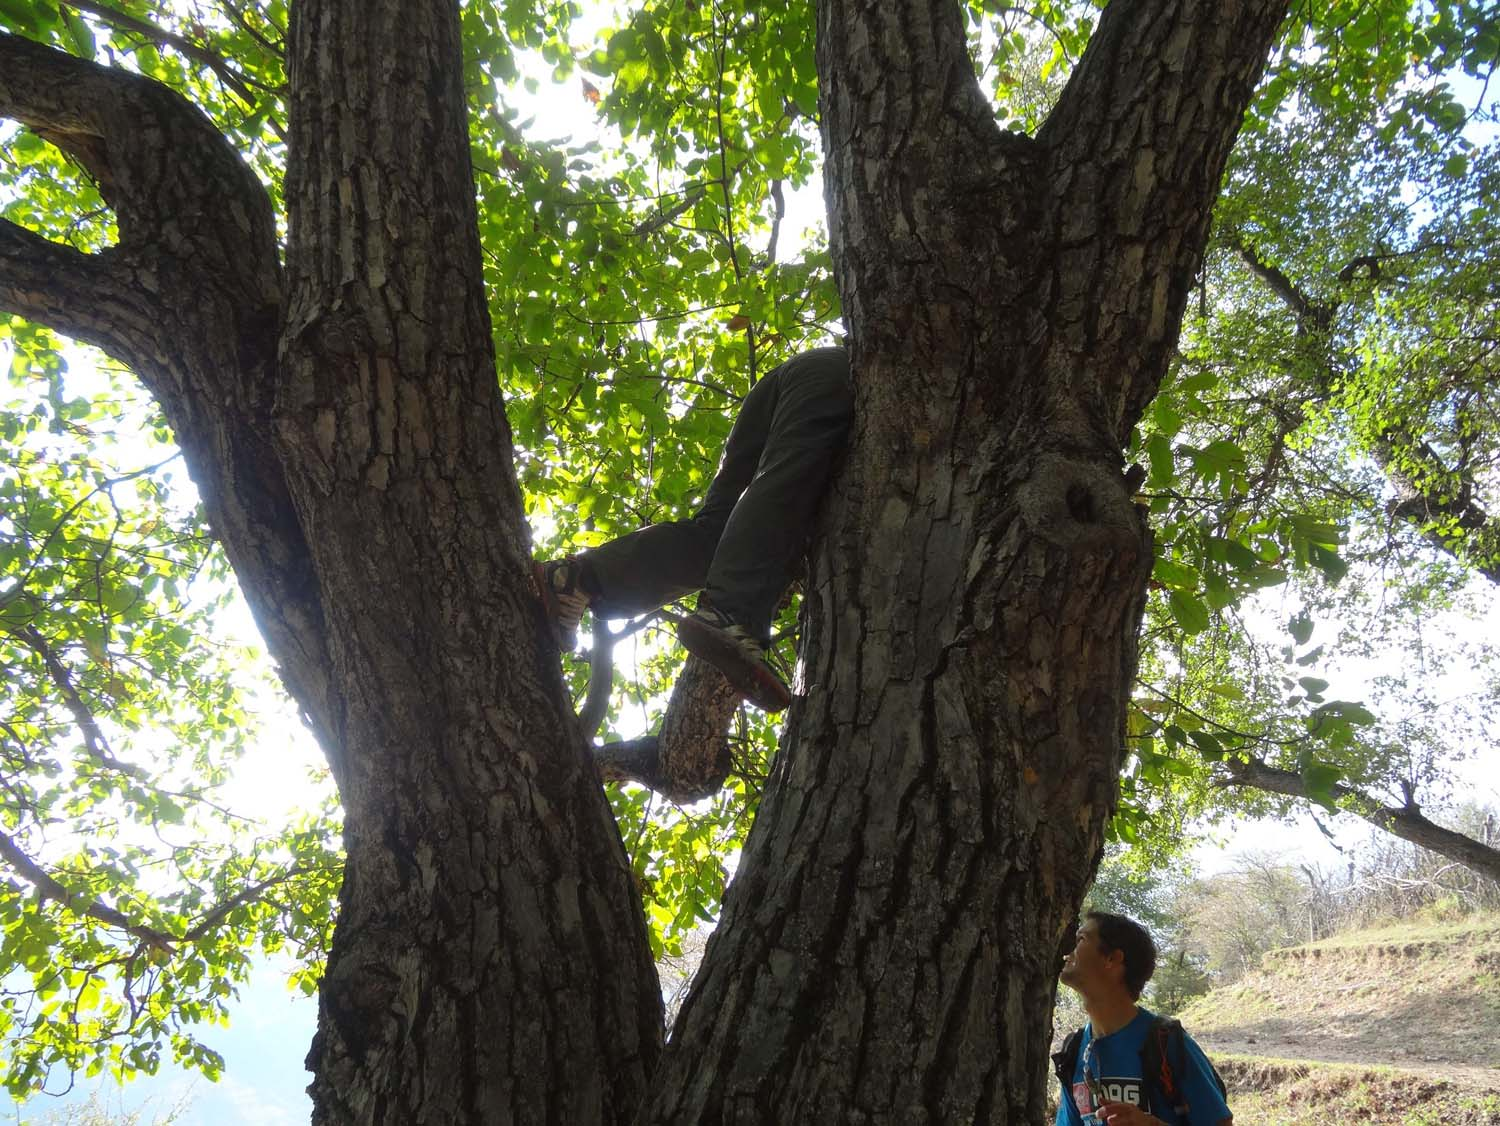 climbing a walnut tree for some good shakin'